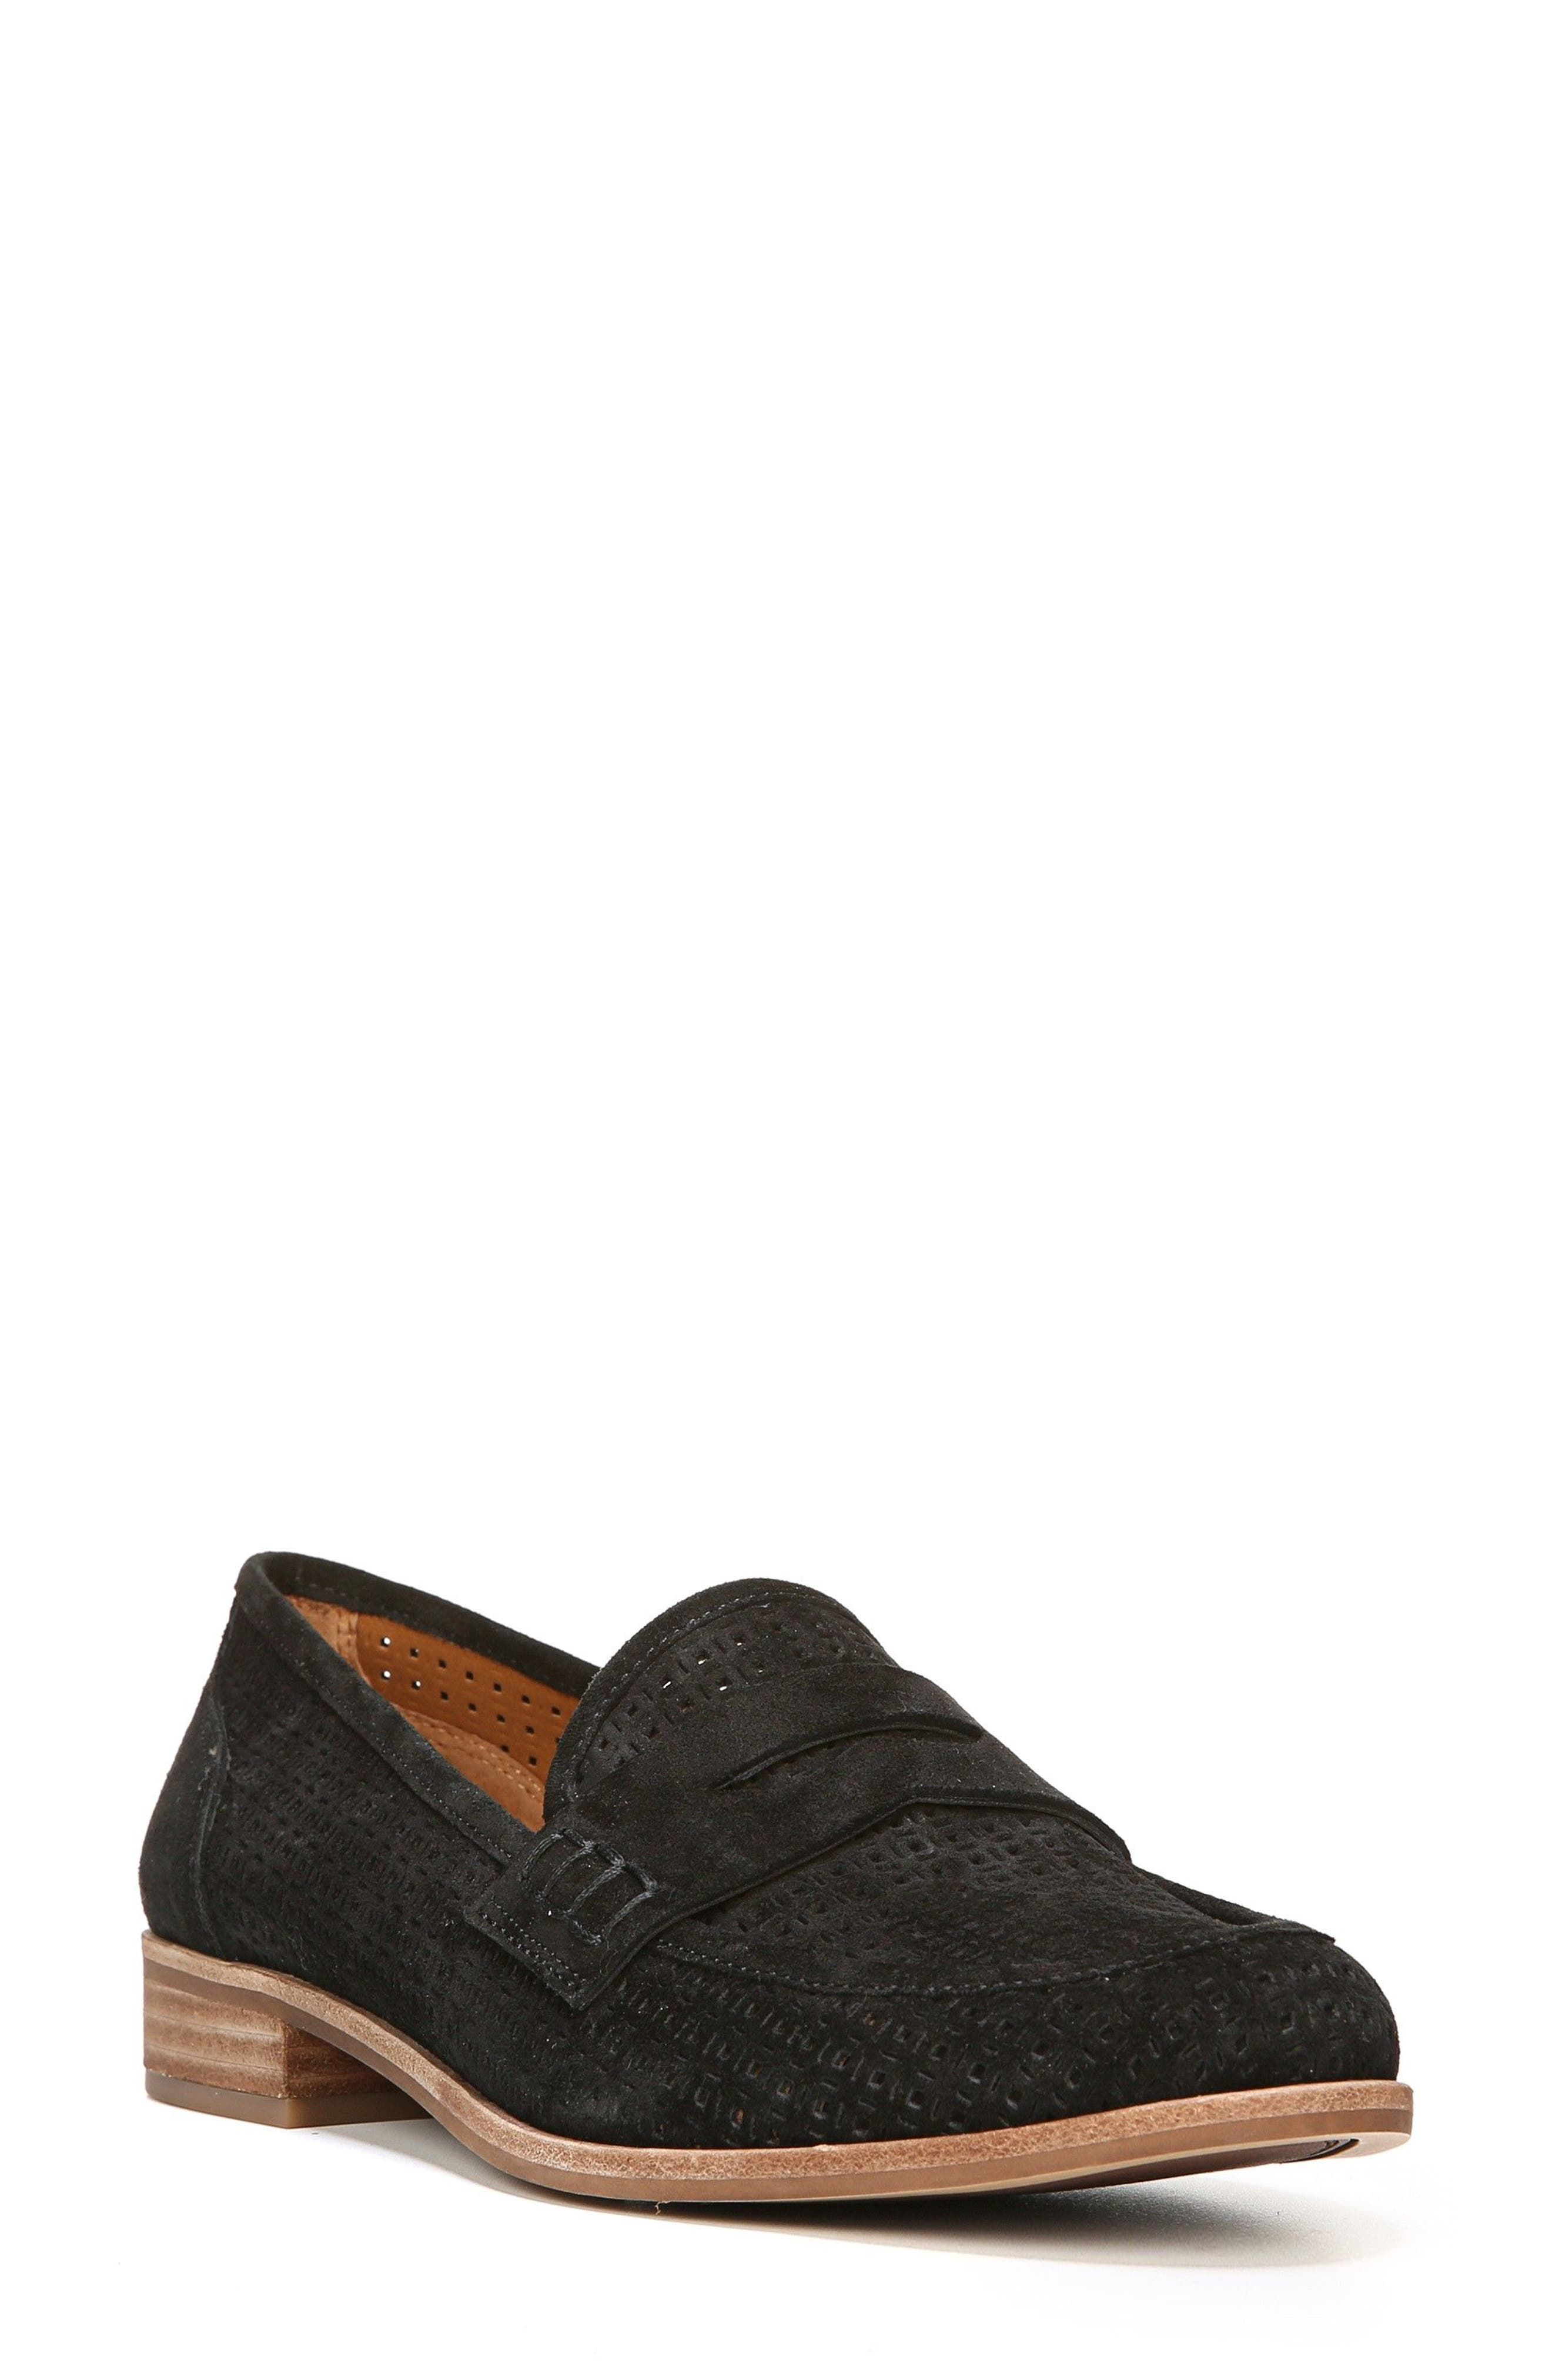 'Jolette' Penny Loafer,                             Main thumbnail 9, color,